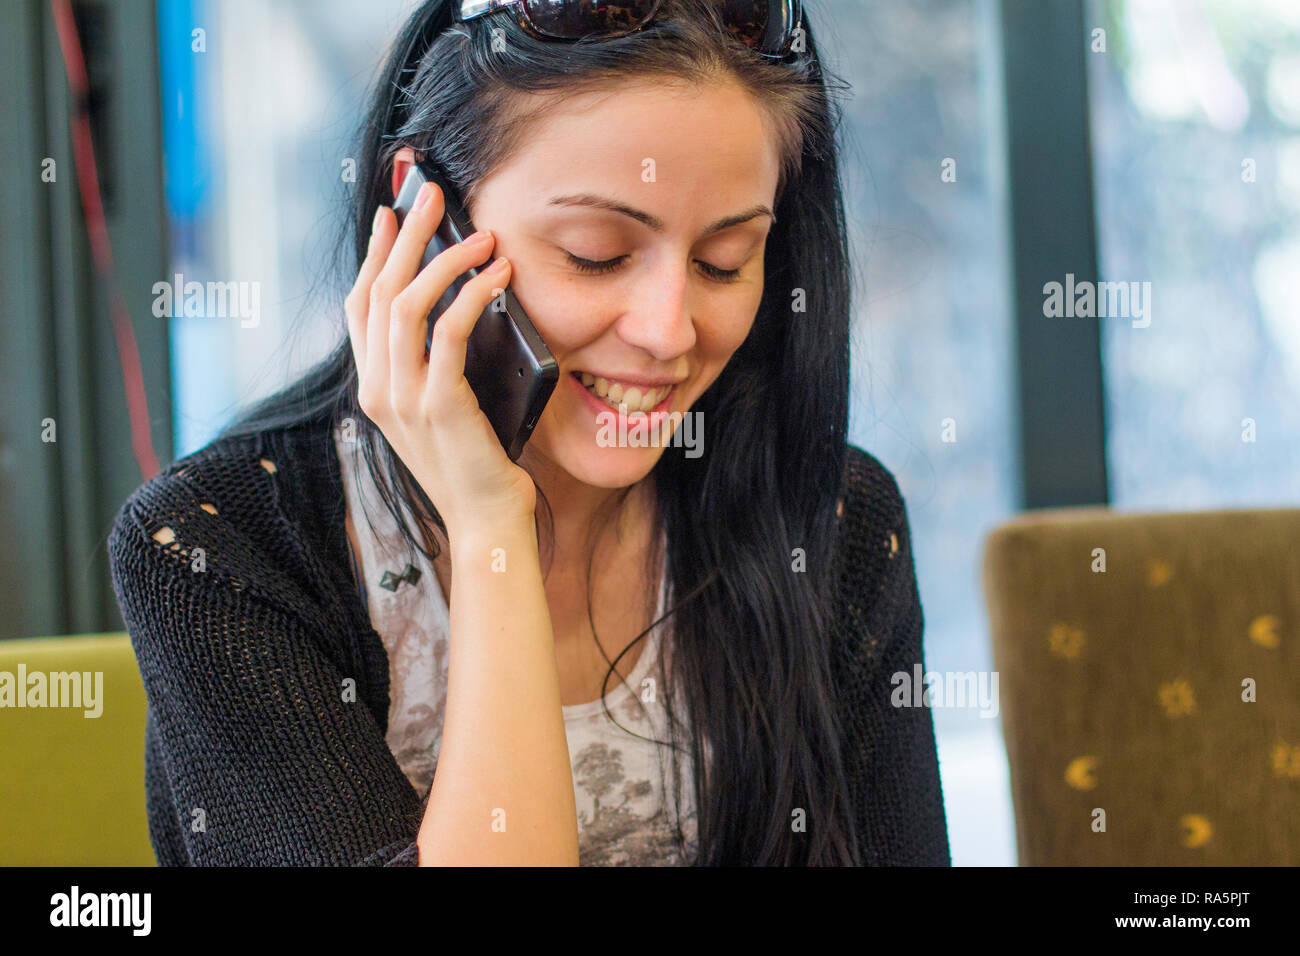 Happy young girl talking on mobile phone in cafe bar on the street Stock Photo